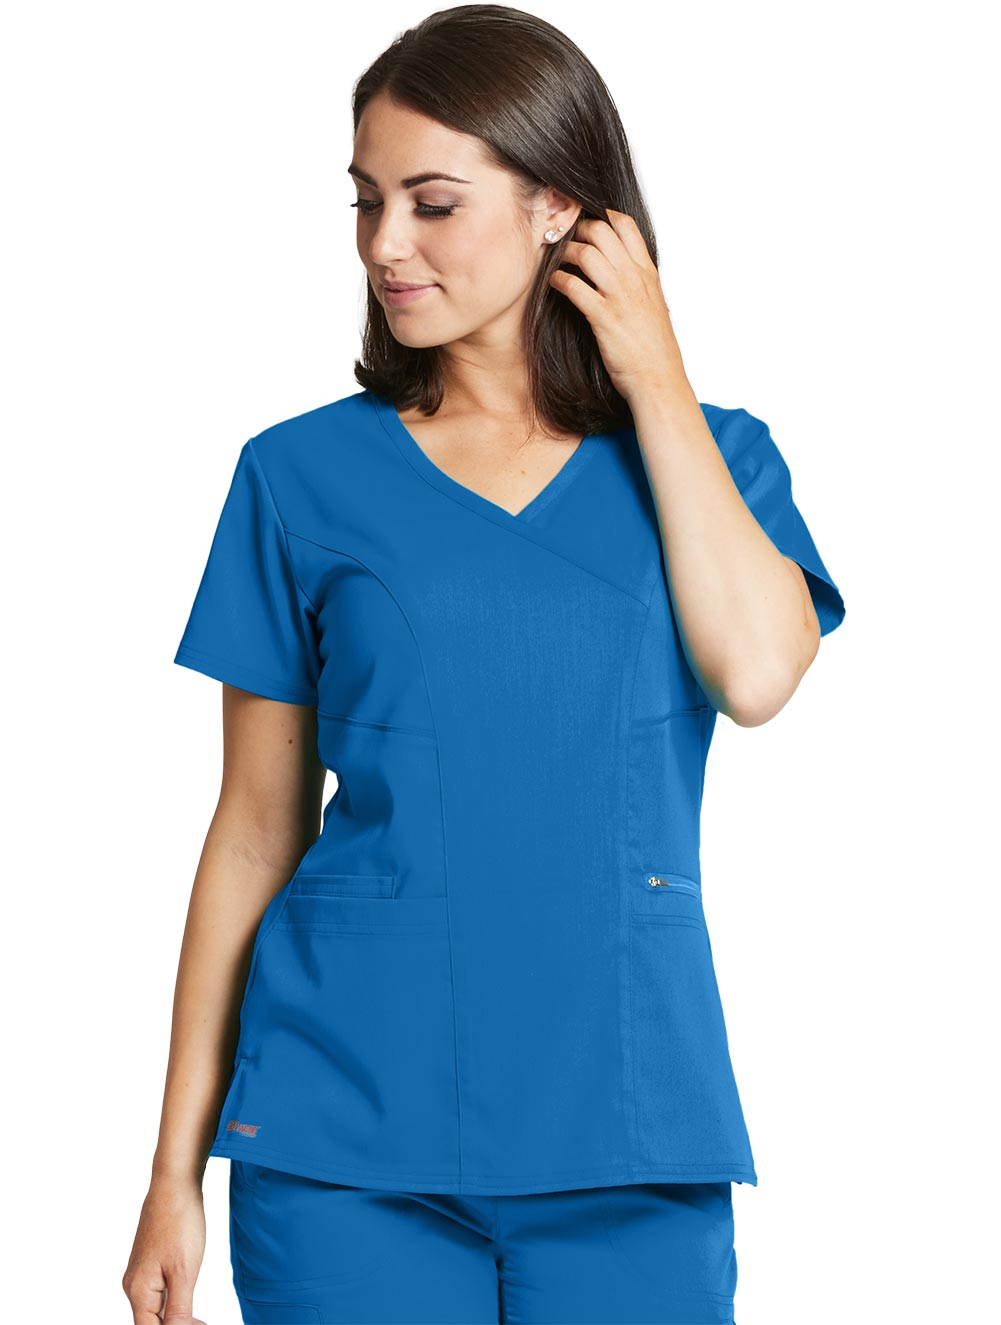 Grey's Anatomy Spandex Stretch Surplice 3-Pocket Scrub Tops